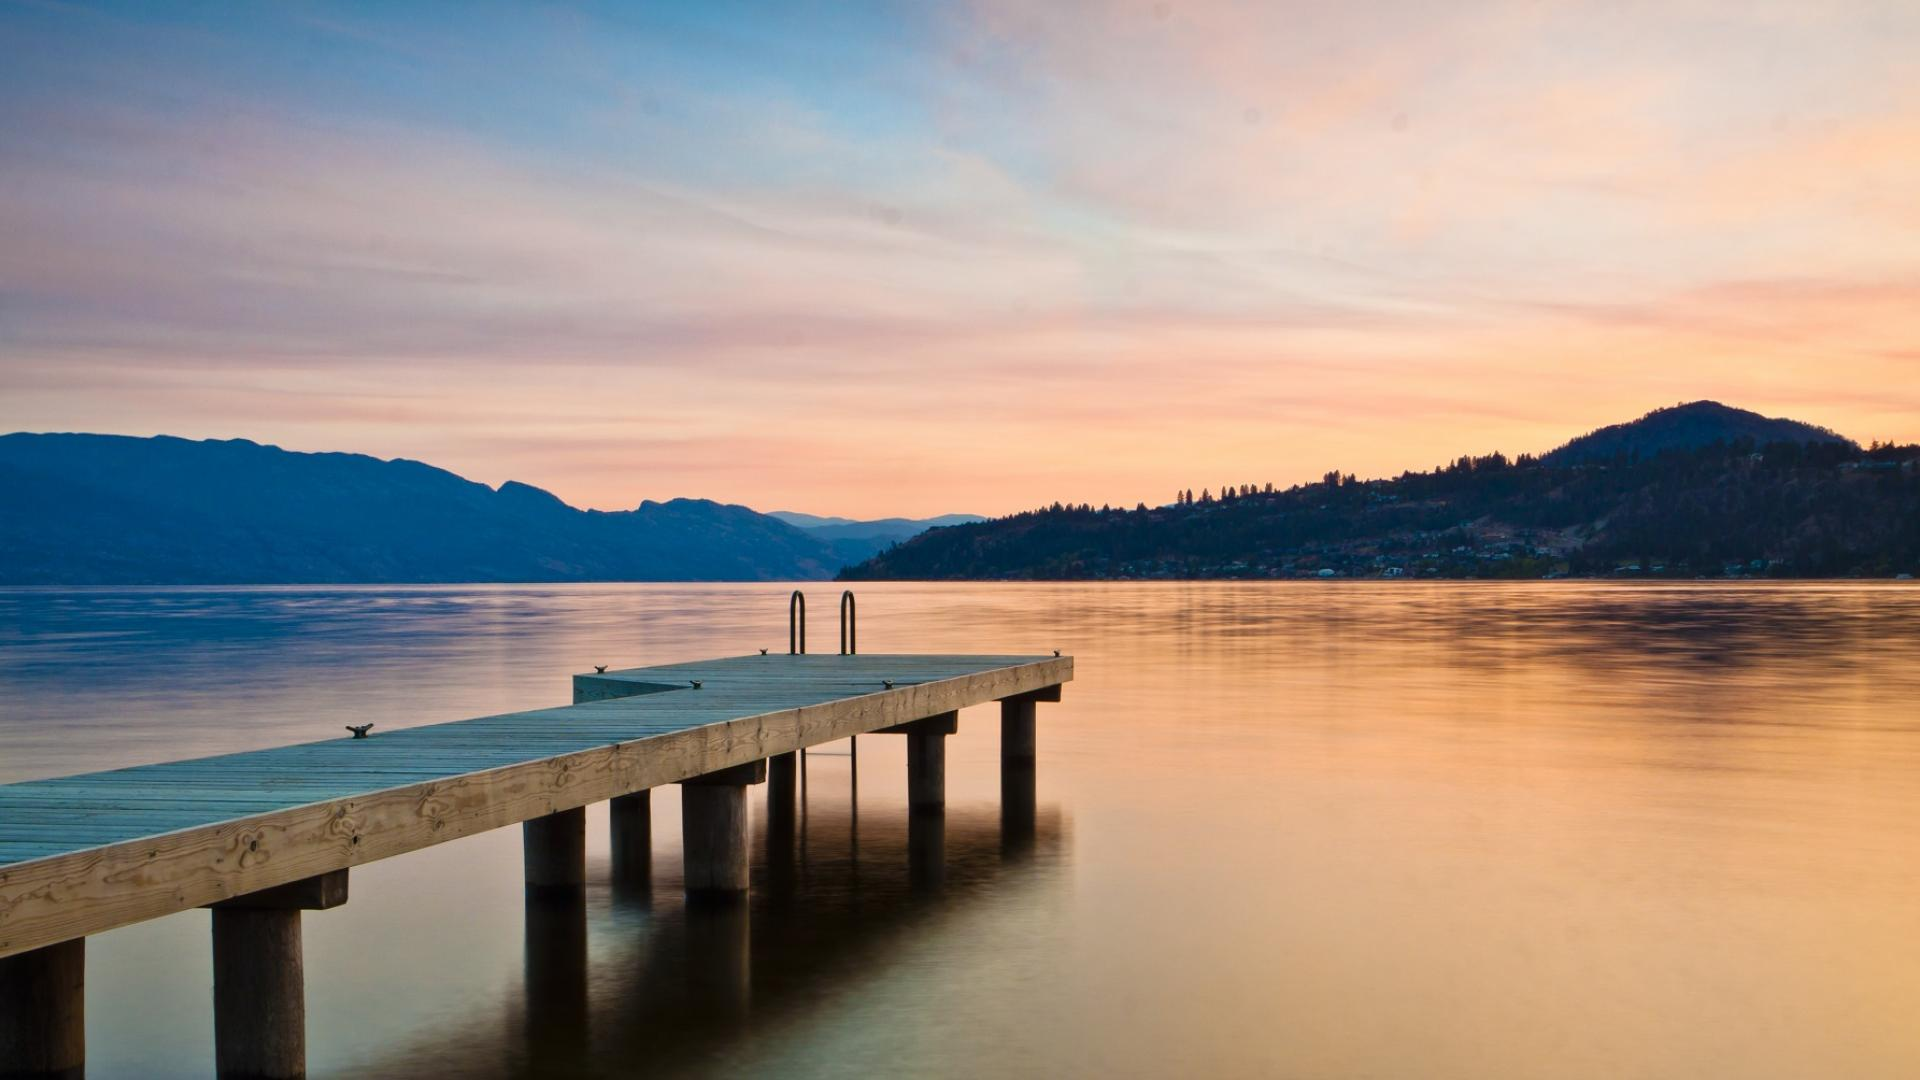 Picture of sunset over Lake Okanagan with view of a dock